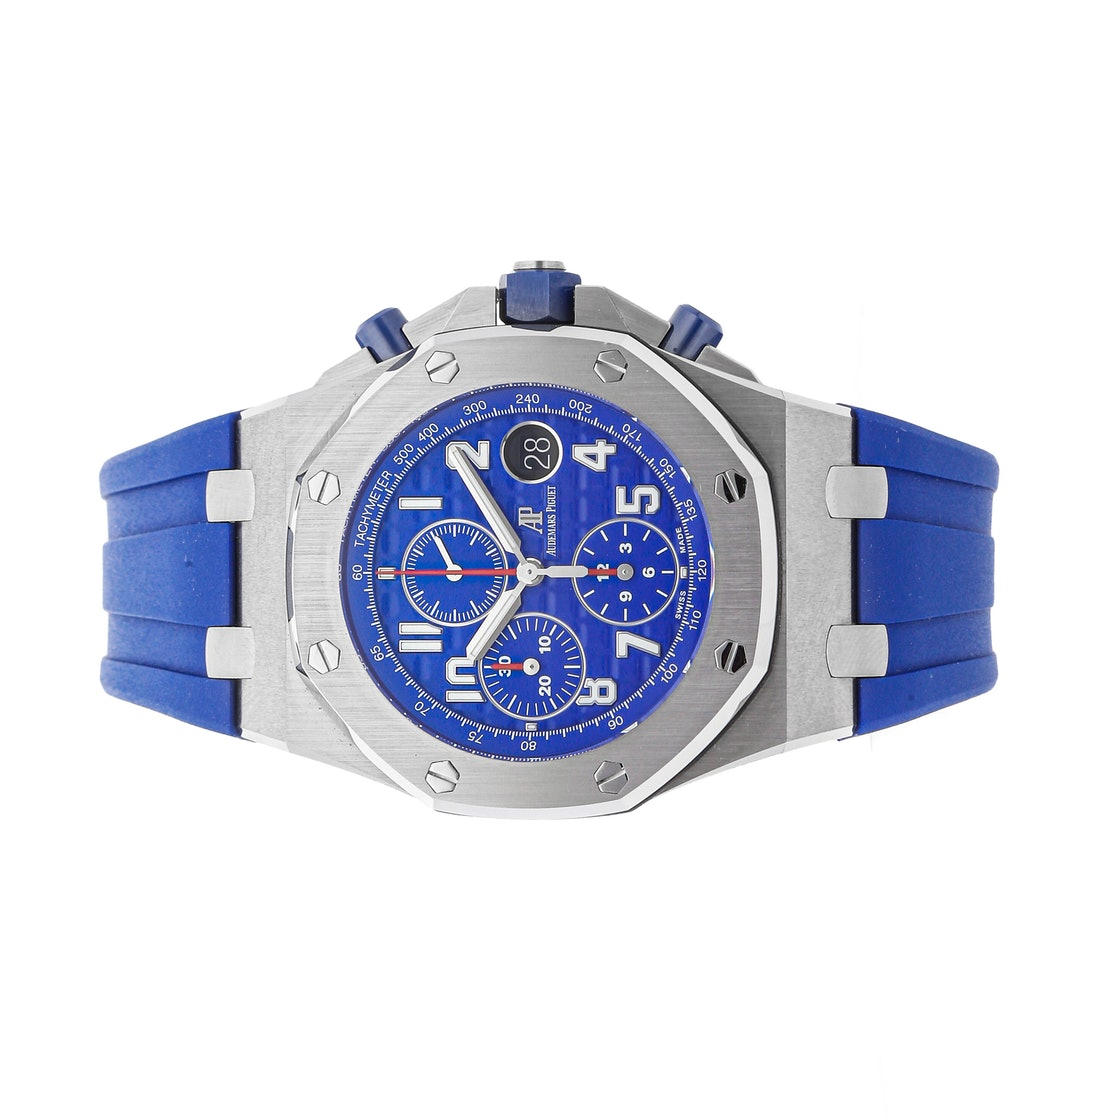 Audemars Piguet Royal Oak Offshore Chronograph 26470ST.OO.A030CA.01